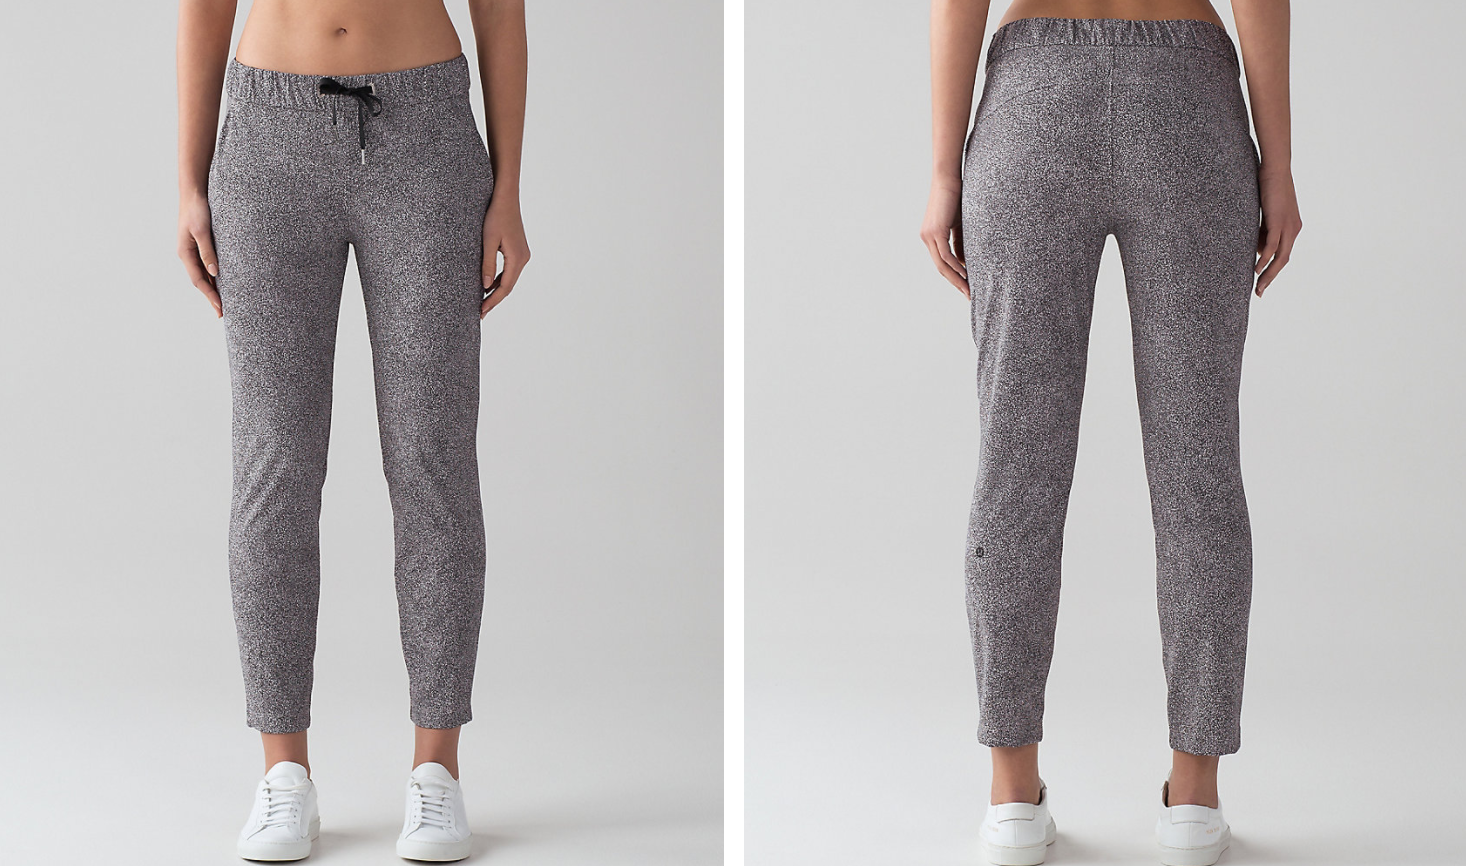 https://api.shopstyle.com/action/apiVisitRetailer?url=https%3A%2F%2Fshop.lululemon.com%2Fp%2Fwomen-pants%2FOn-The-Fly-Pant%2F_%2Fprod8431171%3Frcnt%3D38%26N%3D1z13ziiZ7vf%26cnt%3D75%26color%3DLW5AMYS_028920&site=www.shopstyle.ca&pid=uid6784-25288972-7